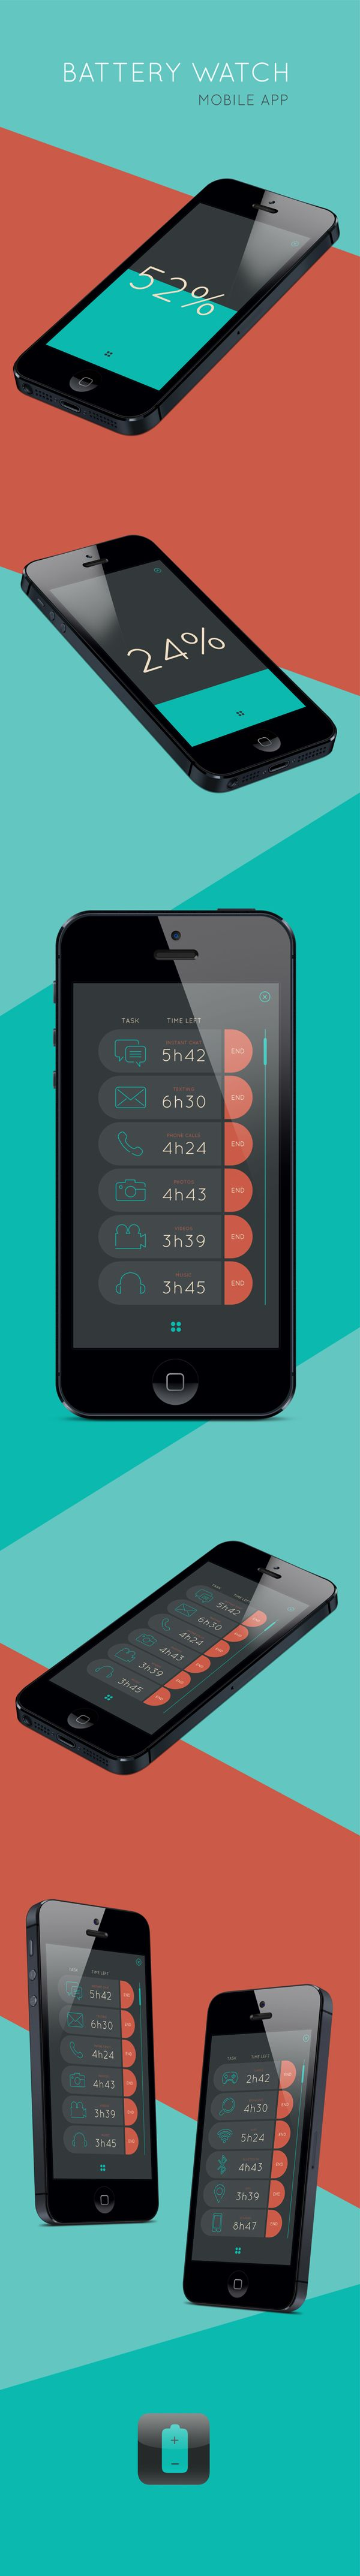 Concept mobile app - Battery Watch by Jacqui Proenca, via Behance